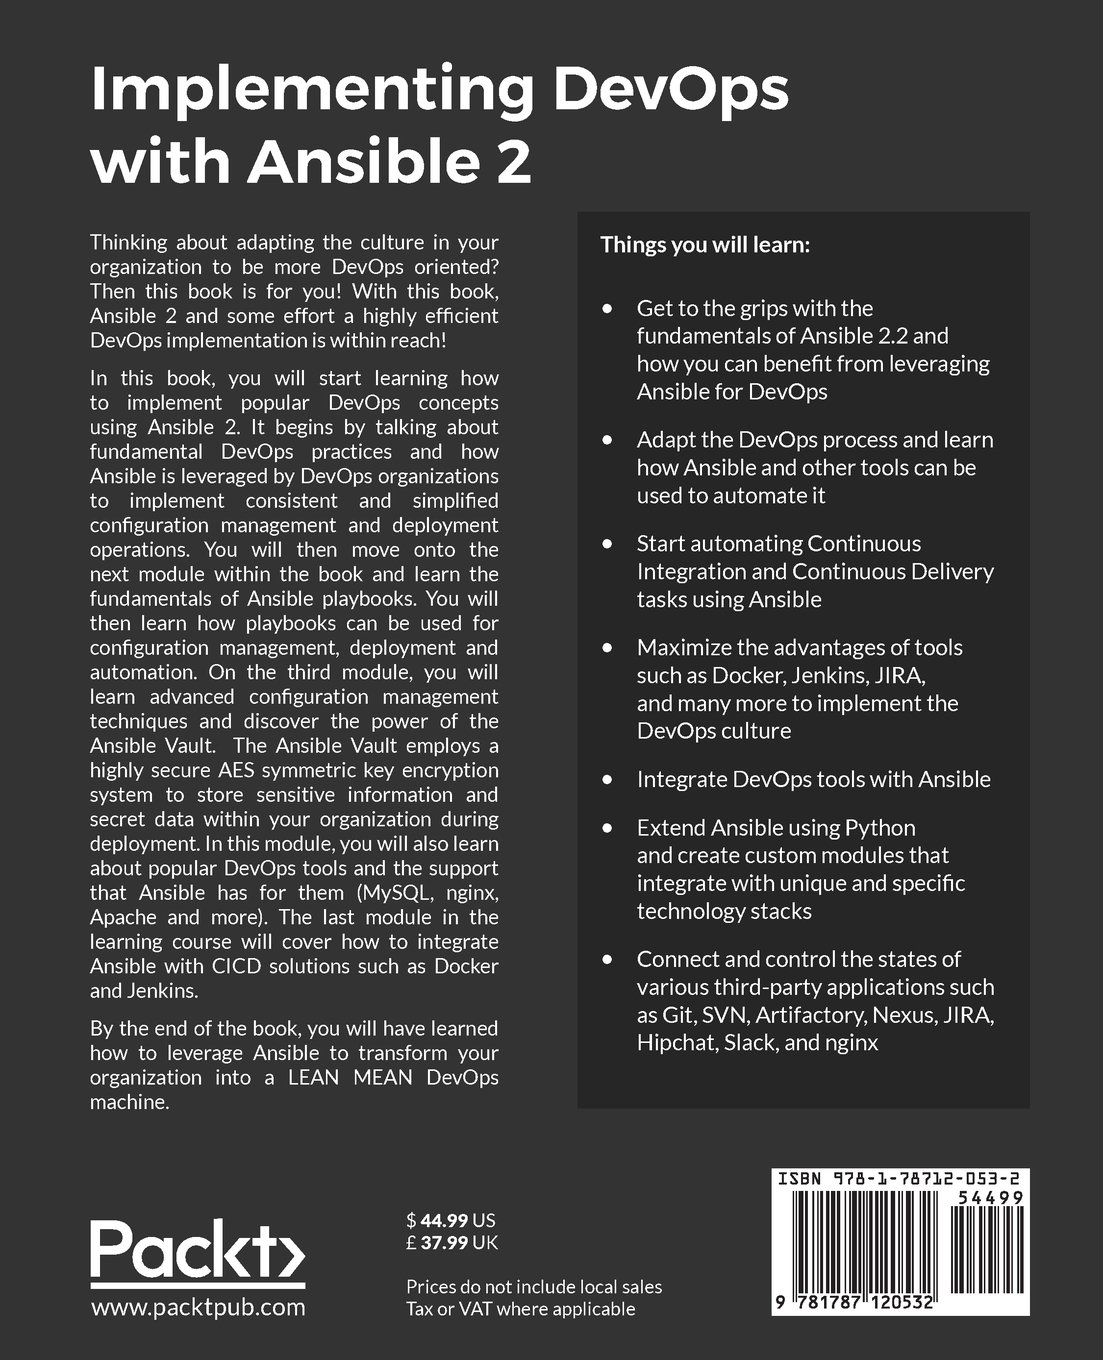 Implementing DevOps with Ansible 2: A step-by-step guide to